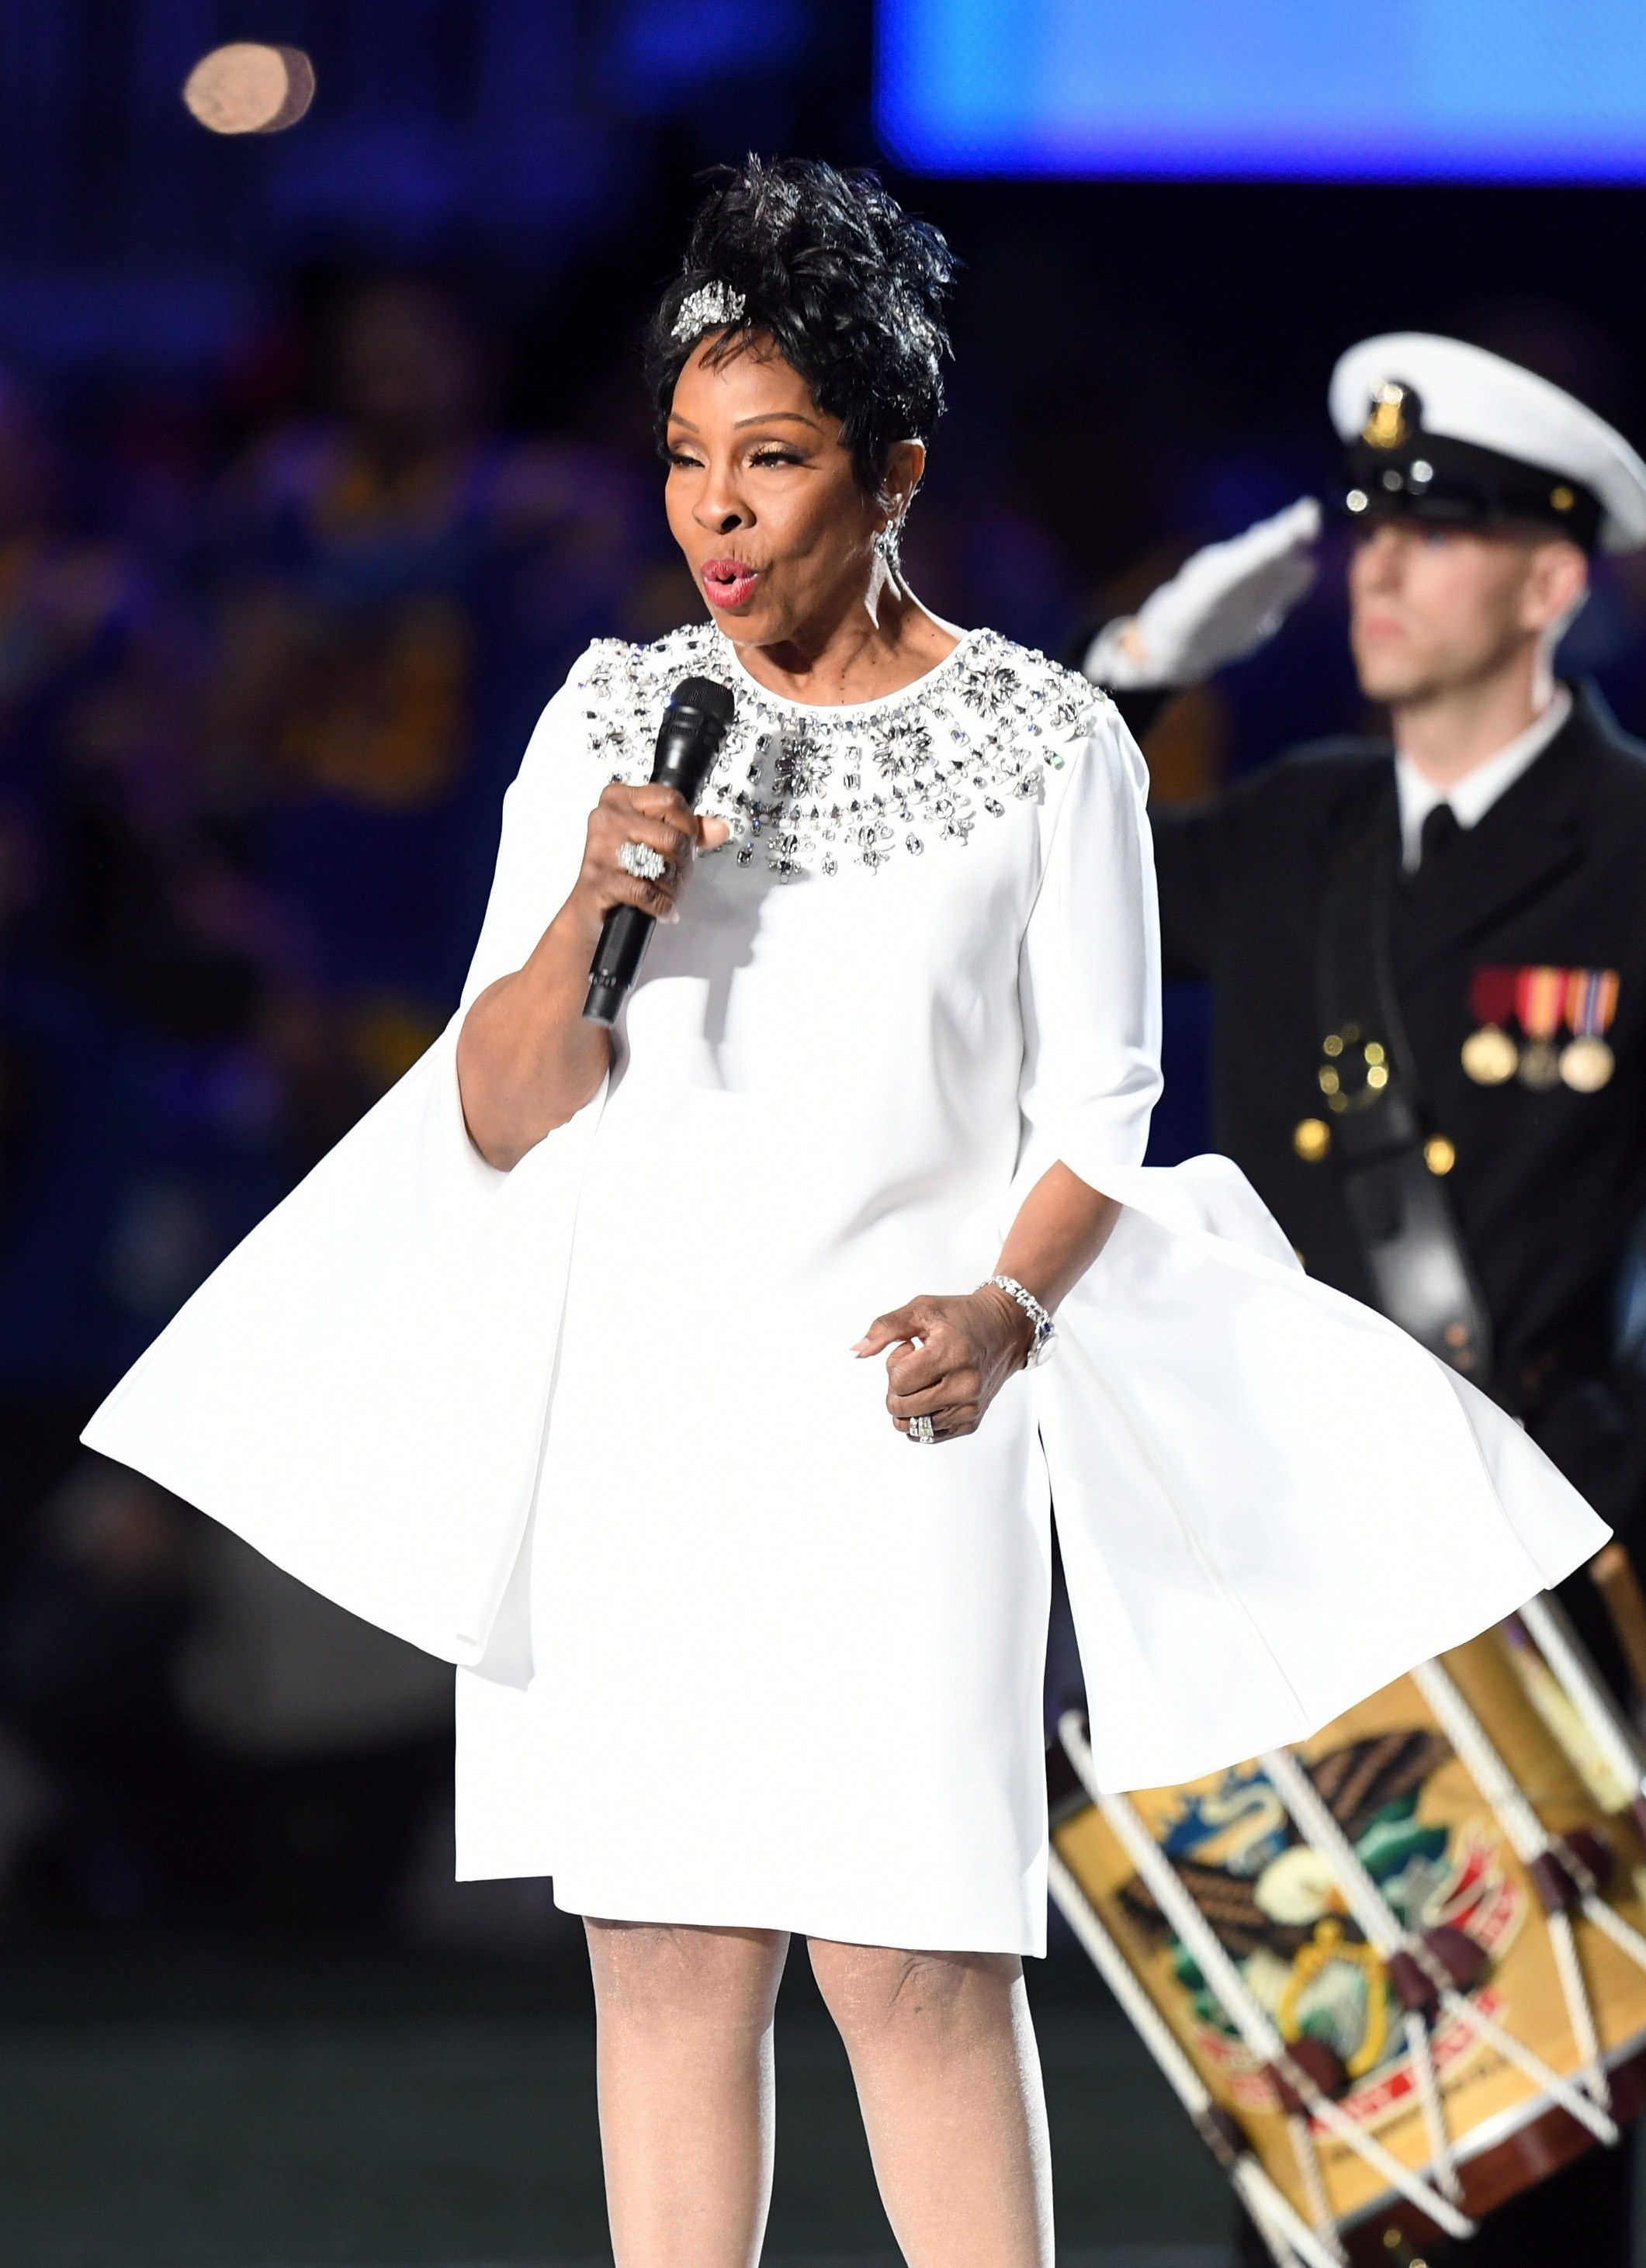 Gladys Knight Steps Out In All White For The National Anthem for Gladys Knight Super Bowl